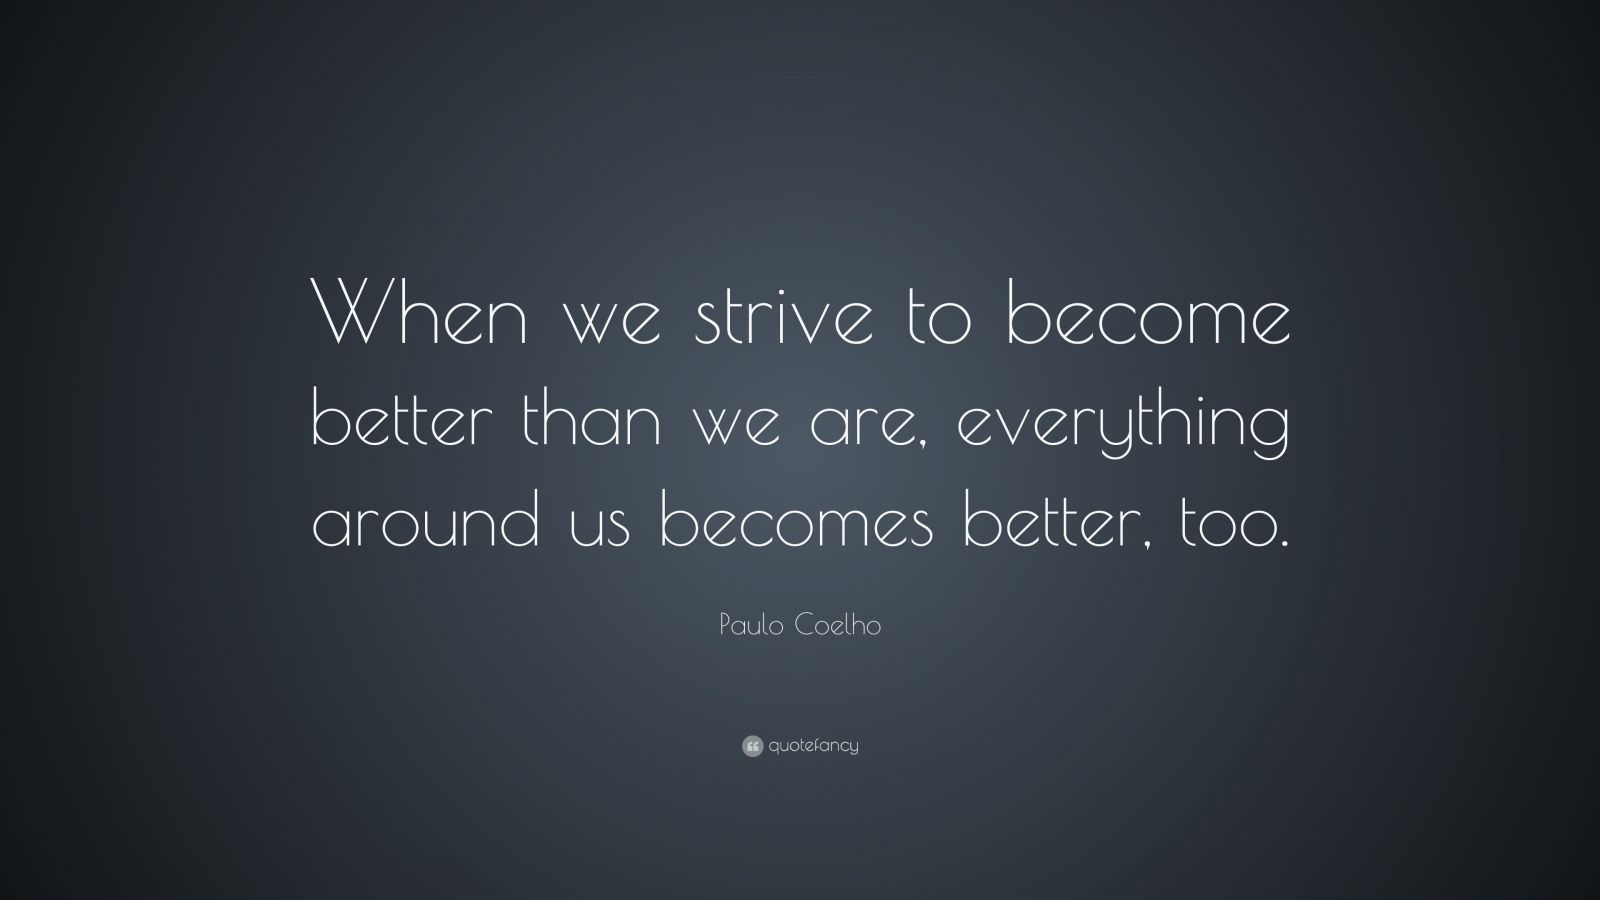 John Lennon Quotes Wallpaper Paulo Coelho Quote When We Strive To Become Better Than